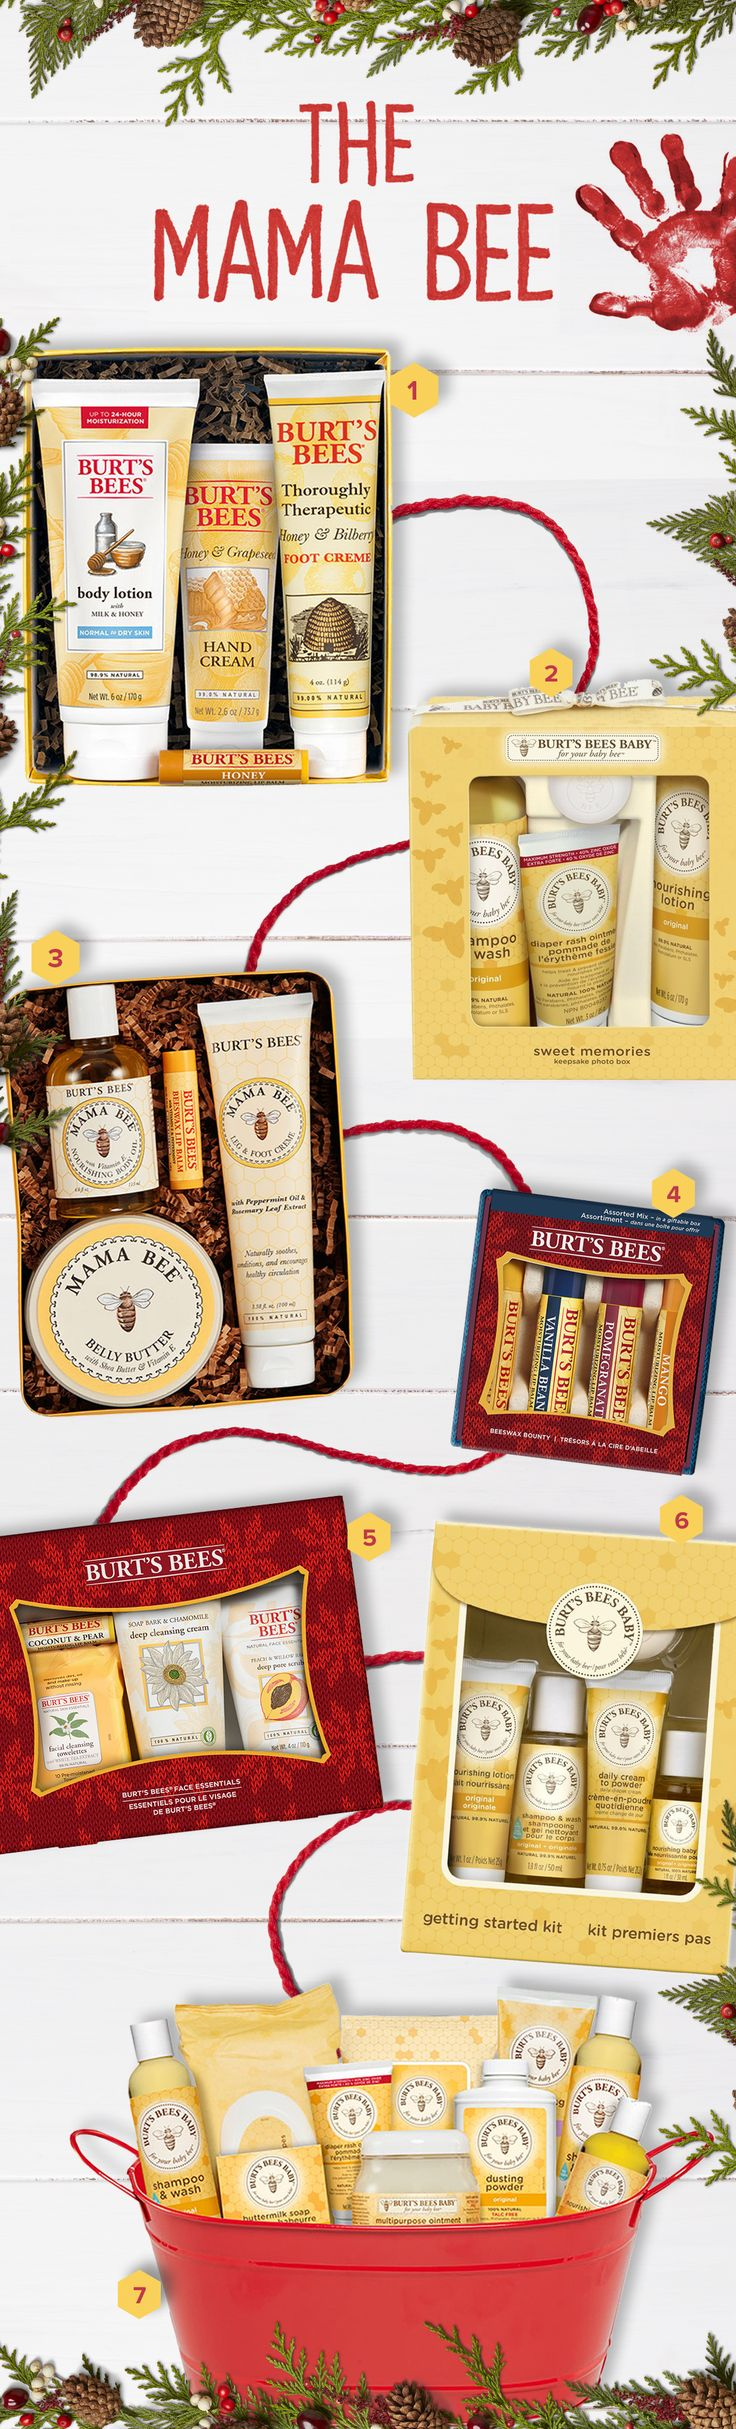 2016 Holiday Gift Guide for The Mama Bee   Give a mom in your life the gift of worry-free this season. Whether she's got a little one on the way or one who's currently drawing on the walls, The Mama Bee could always use more natural in her life. Get her the gift of worry-free with Burt's Bees products that are safe and effective for her little bee and her.